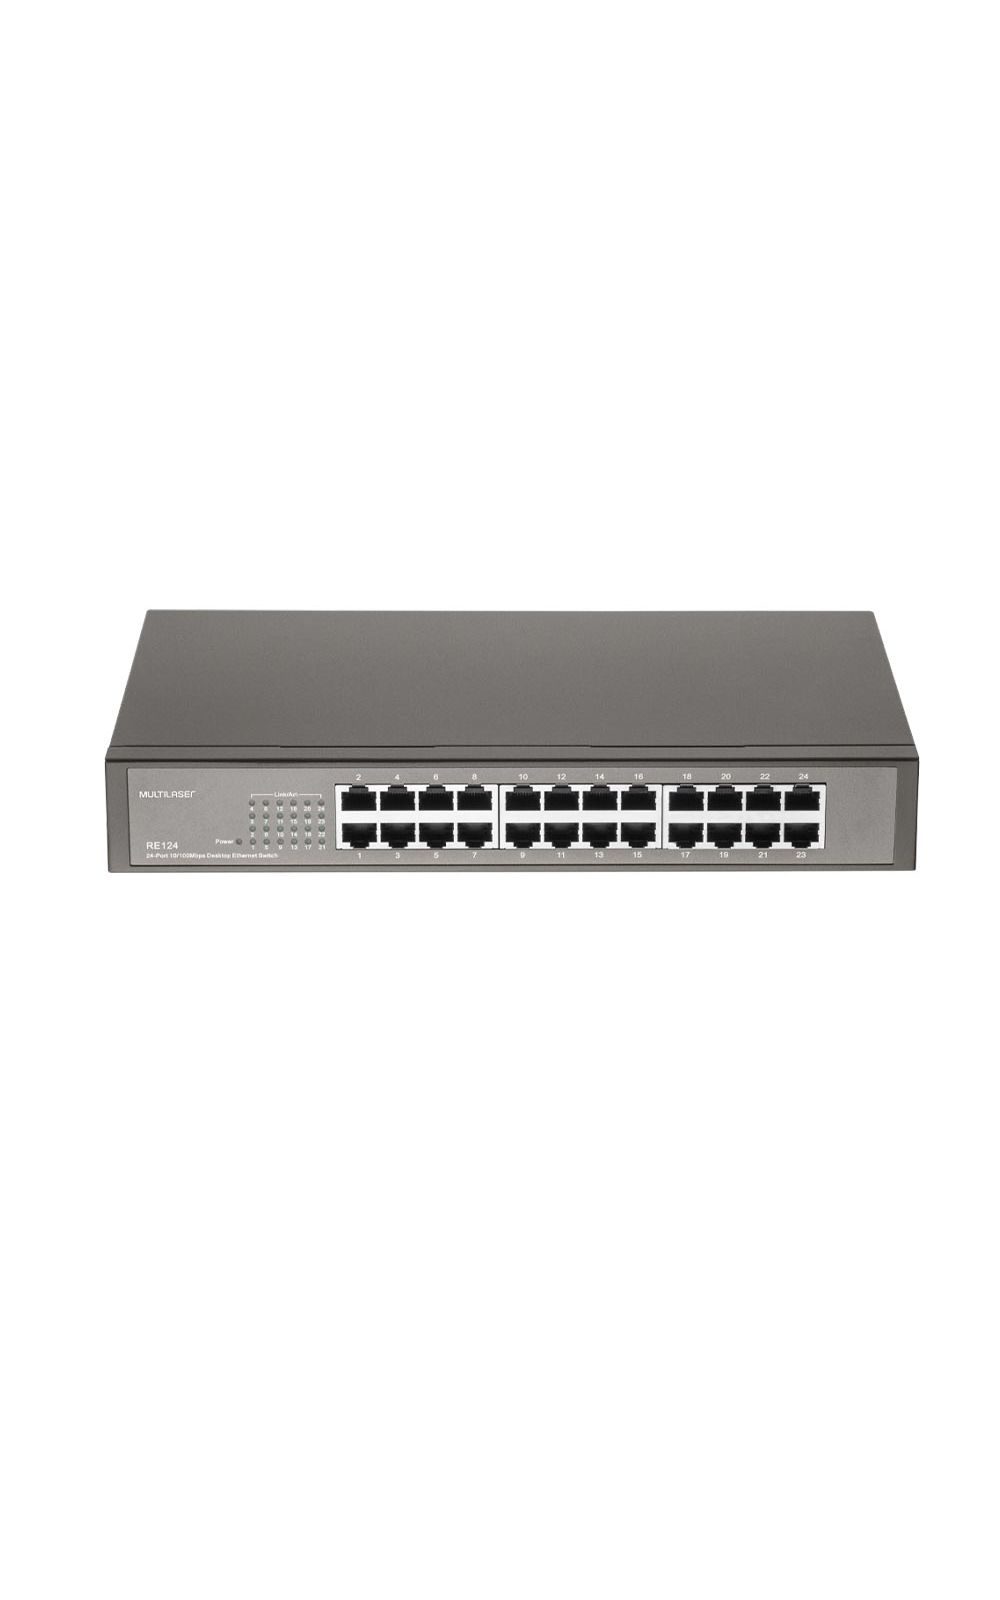 Foto 3 - Switch 24 Portas Fast Ethernet Qos Multilaser - RE124